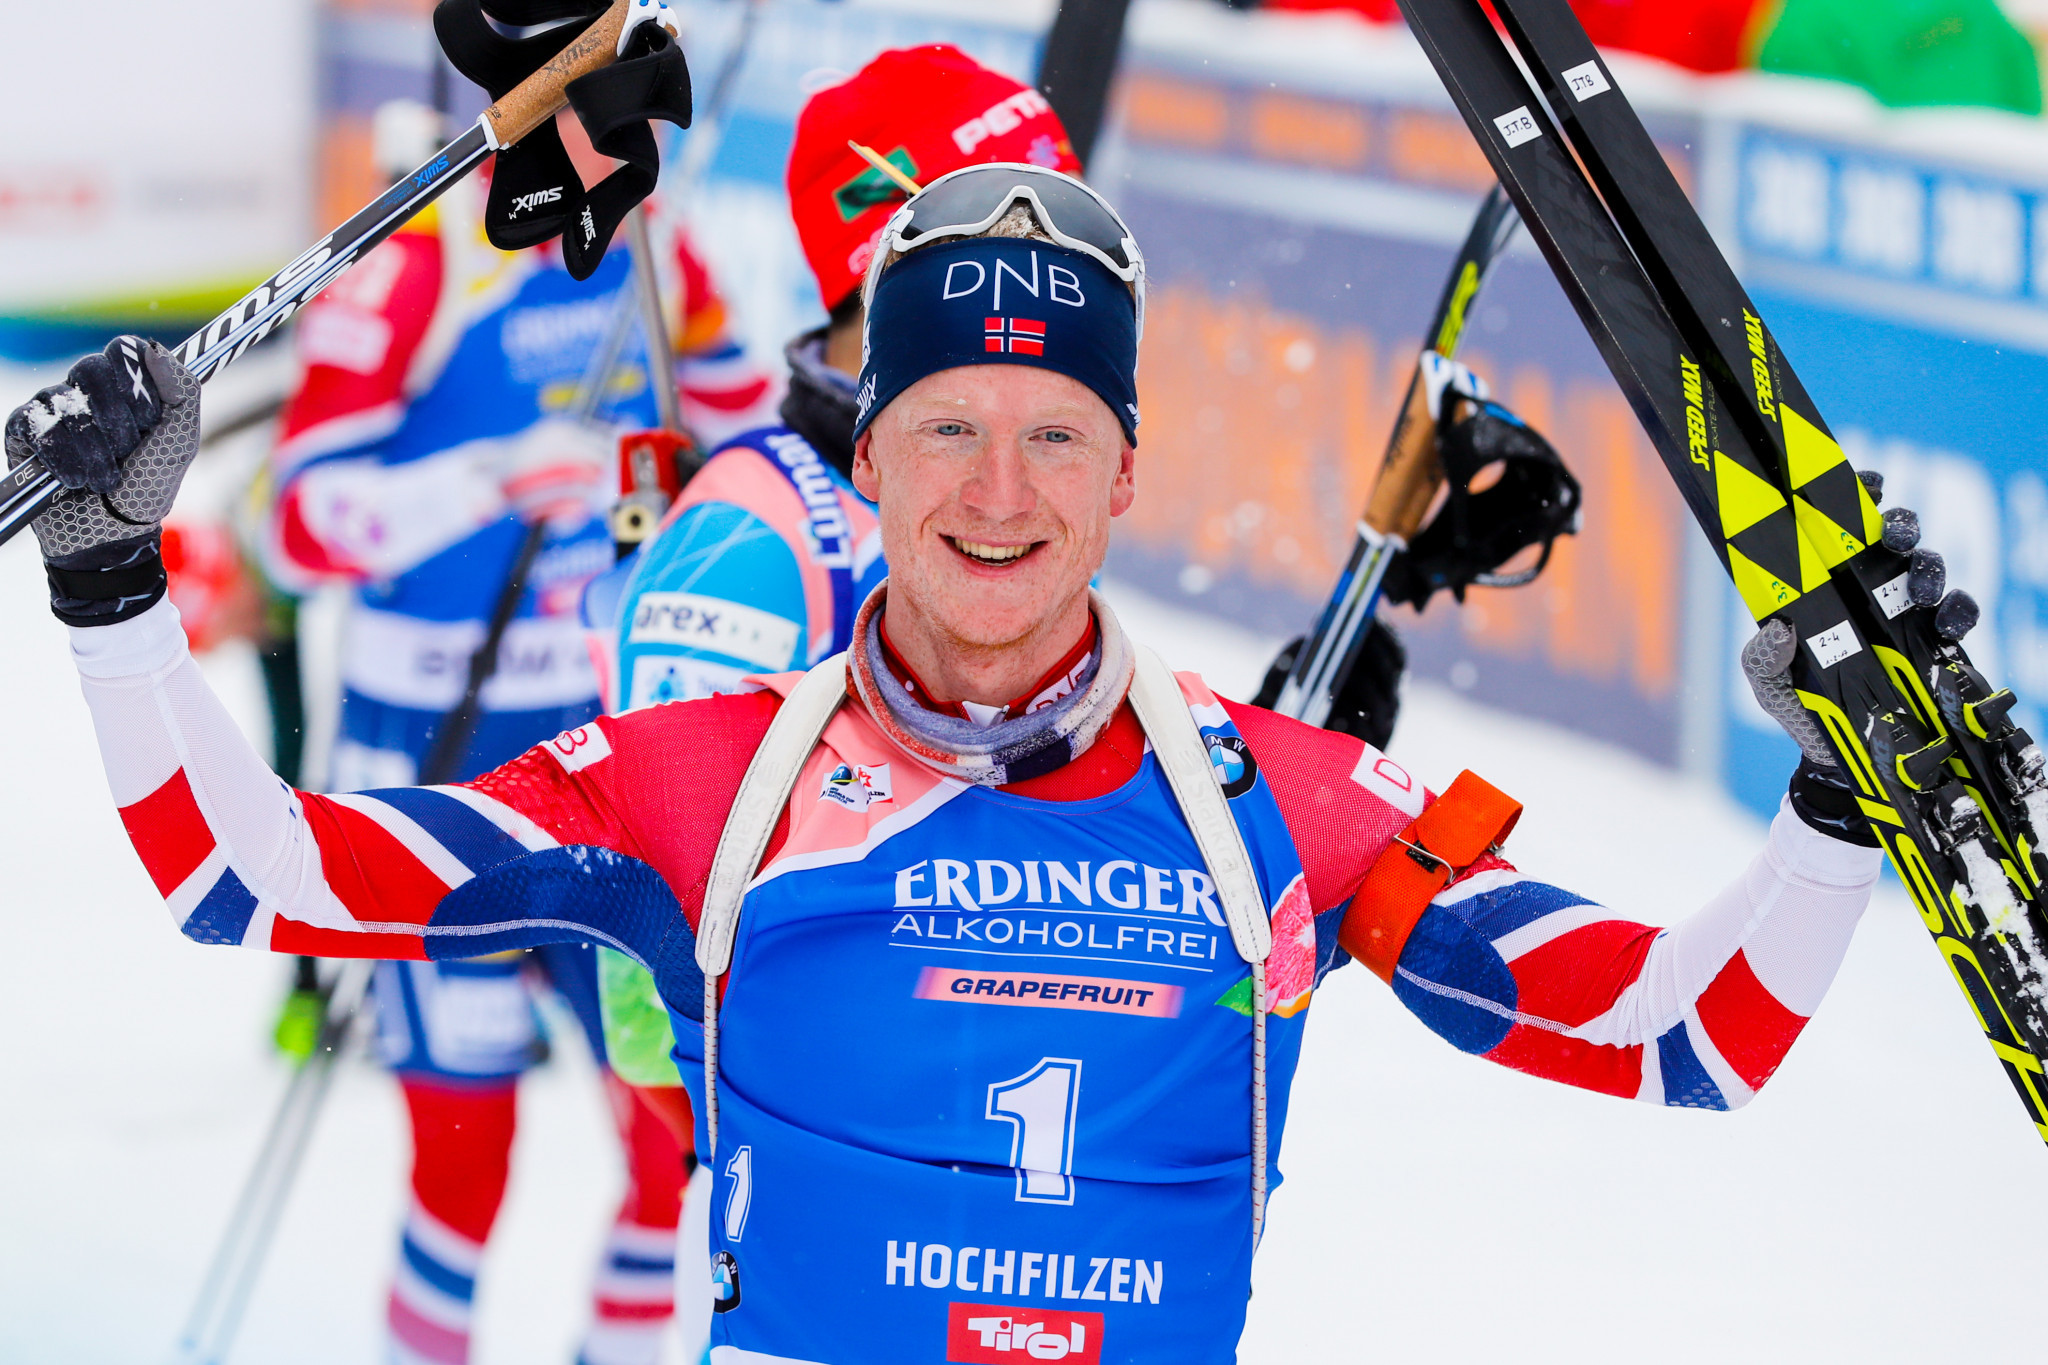 Bø secures second straight win with pursuit triumph at IBU World Cup